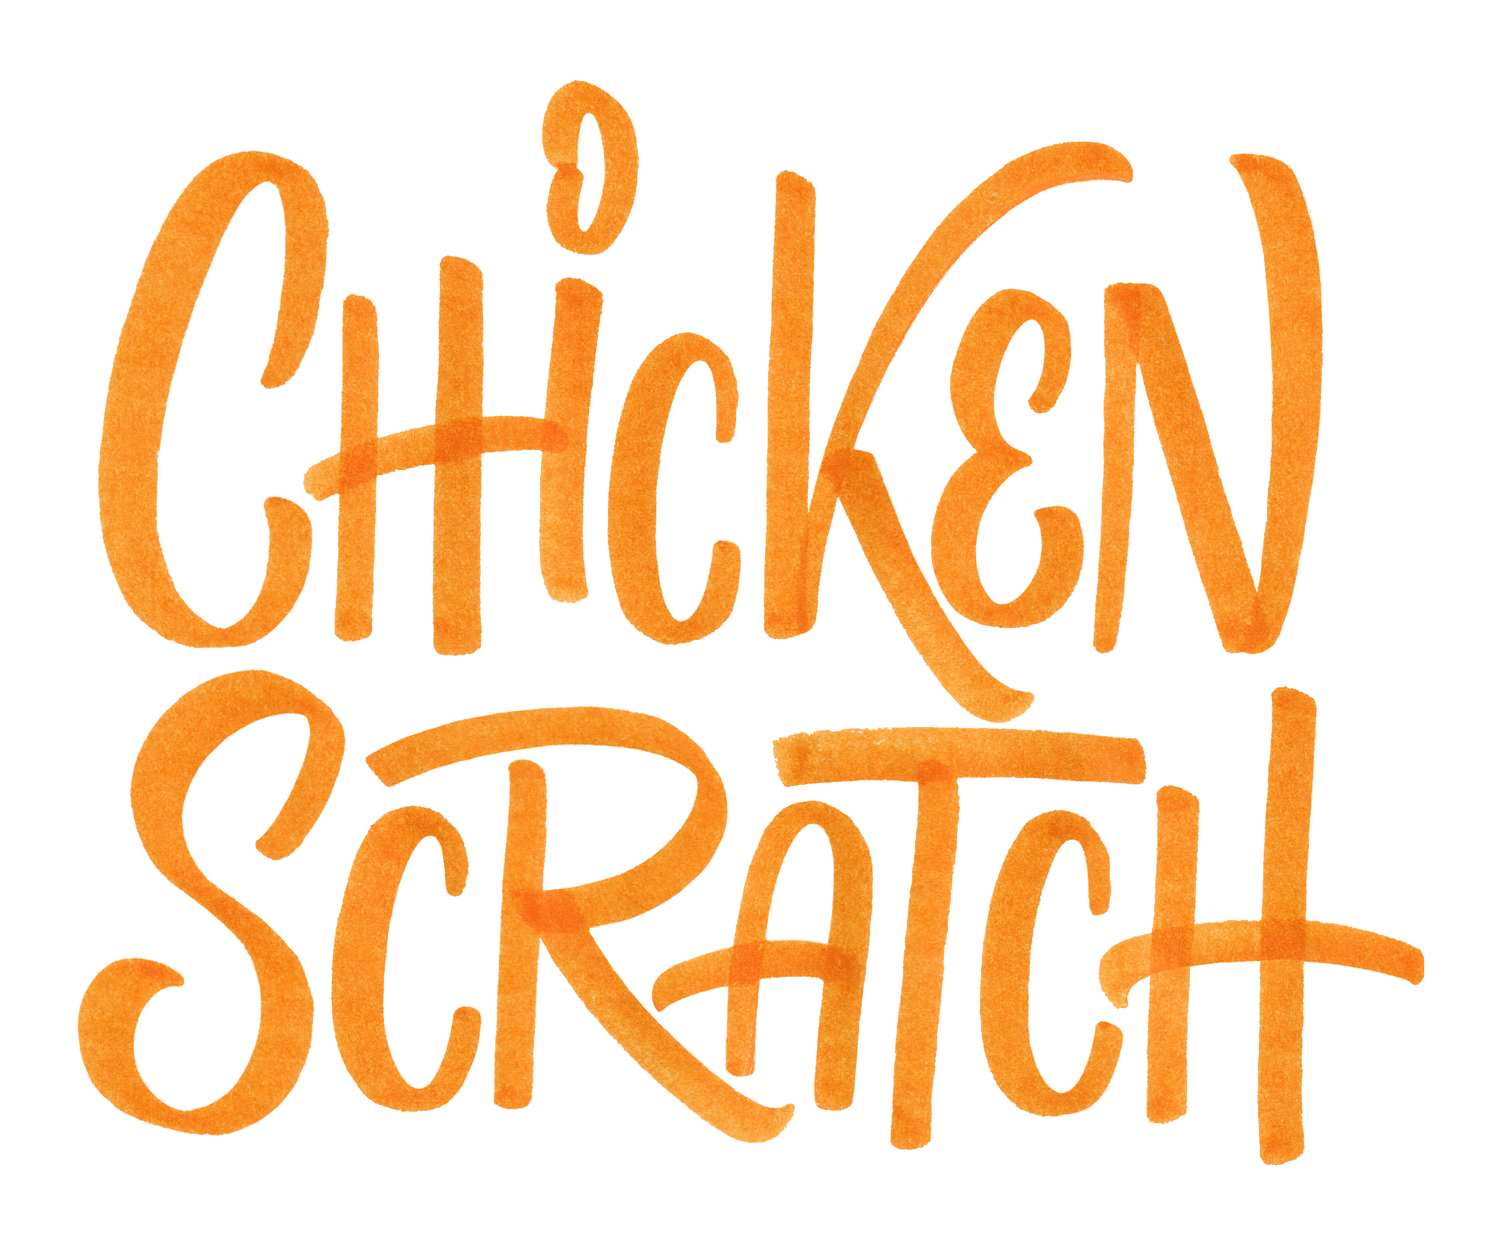 crayligraphy_chickenscratch_lettering.png